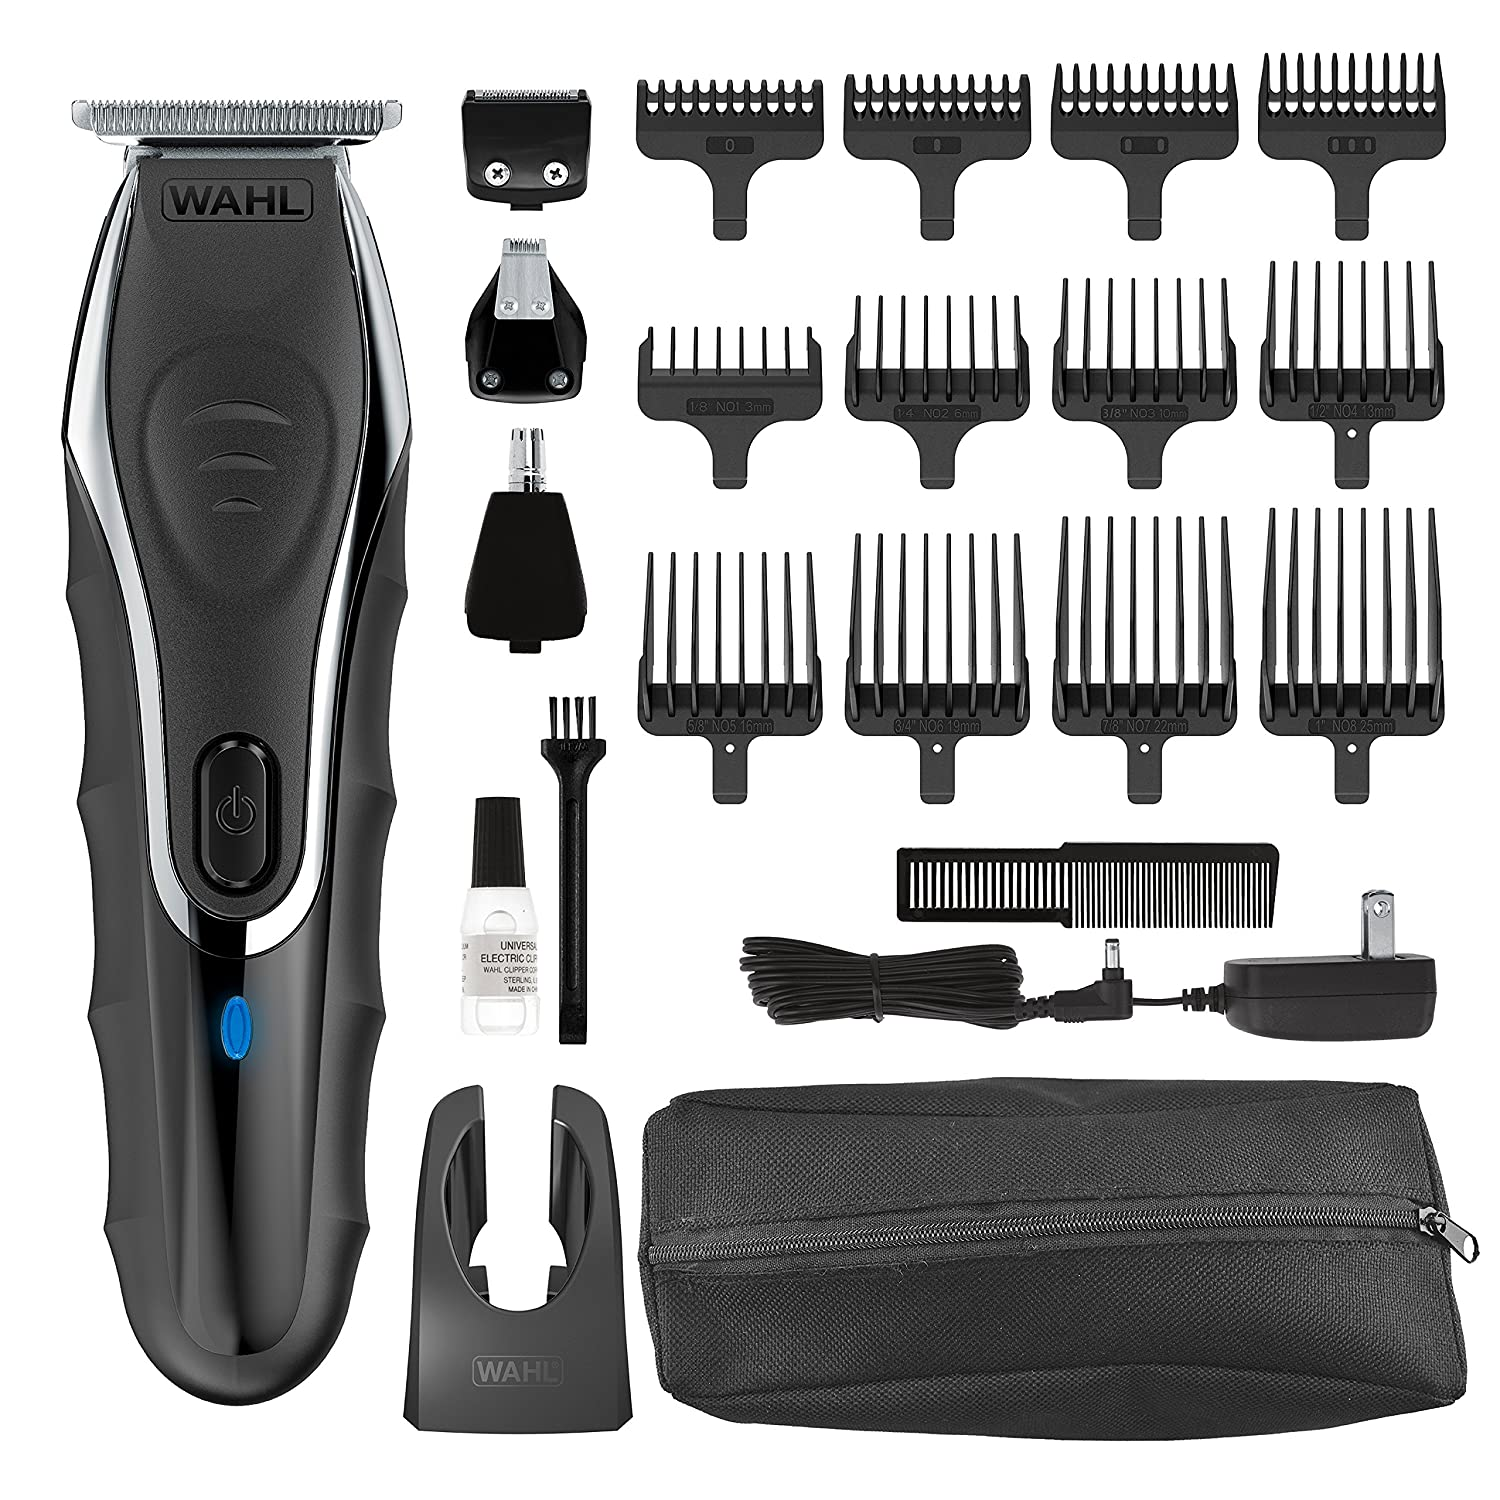 Wahl Clipper Aqua Blade Wet/Dry Beard Trimmer Kit, Lithium Ion All in One Grooming Kit for Beard, Ear, Nose and Body, Waterproof Cordless Rechargeable, By The Brand used by Professionals #9899-100 Wahl Clipper Corp